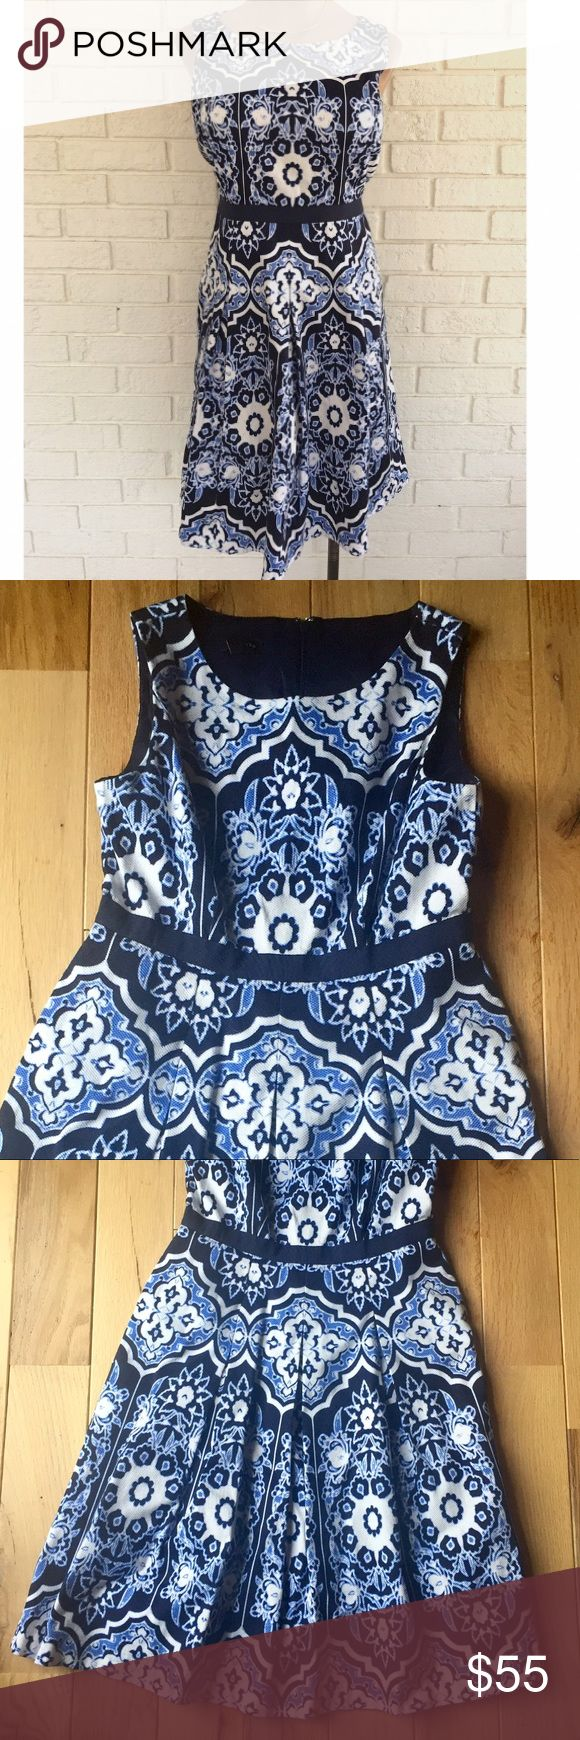 {Talbots}NWOT Blue & White Dress New With Out Tags. Retails at $169. Navy, blue, and white printed fit and flare sleeveless dress. High round neckline. Navy waist line. Skirt fits loose and is pleated. Zips down the back. Size 2P from Talbots petites. 💲Will take best reasonable offer. Talbots Dresses